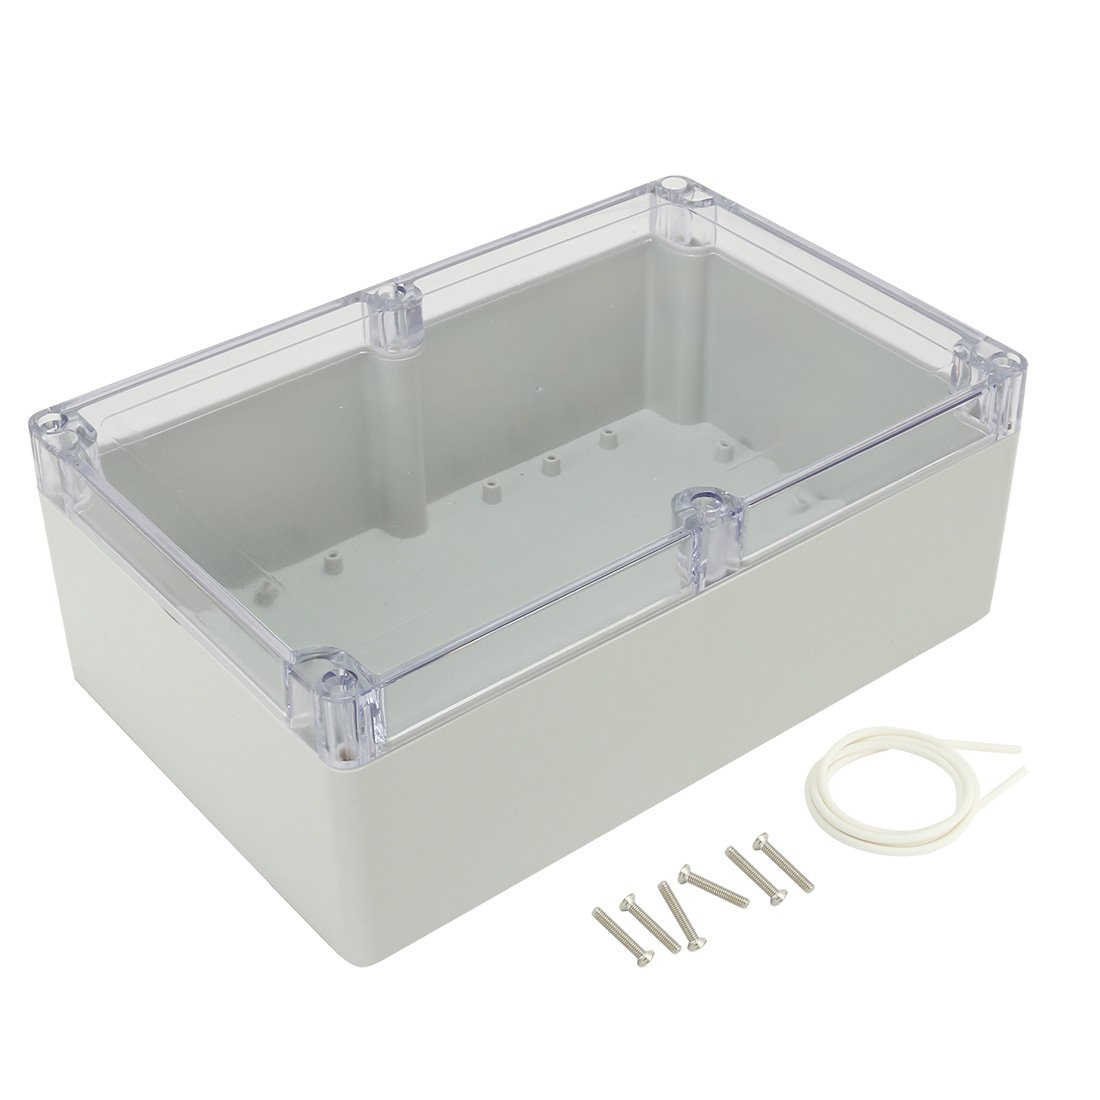 uxcell 9''x5.9''x3.34''(230mmx150mmx85mm) ABS Junction Box Electric Project Enclosure Clear